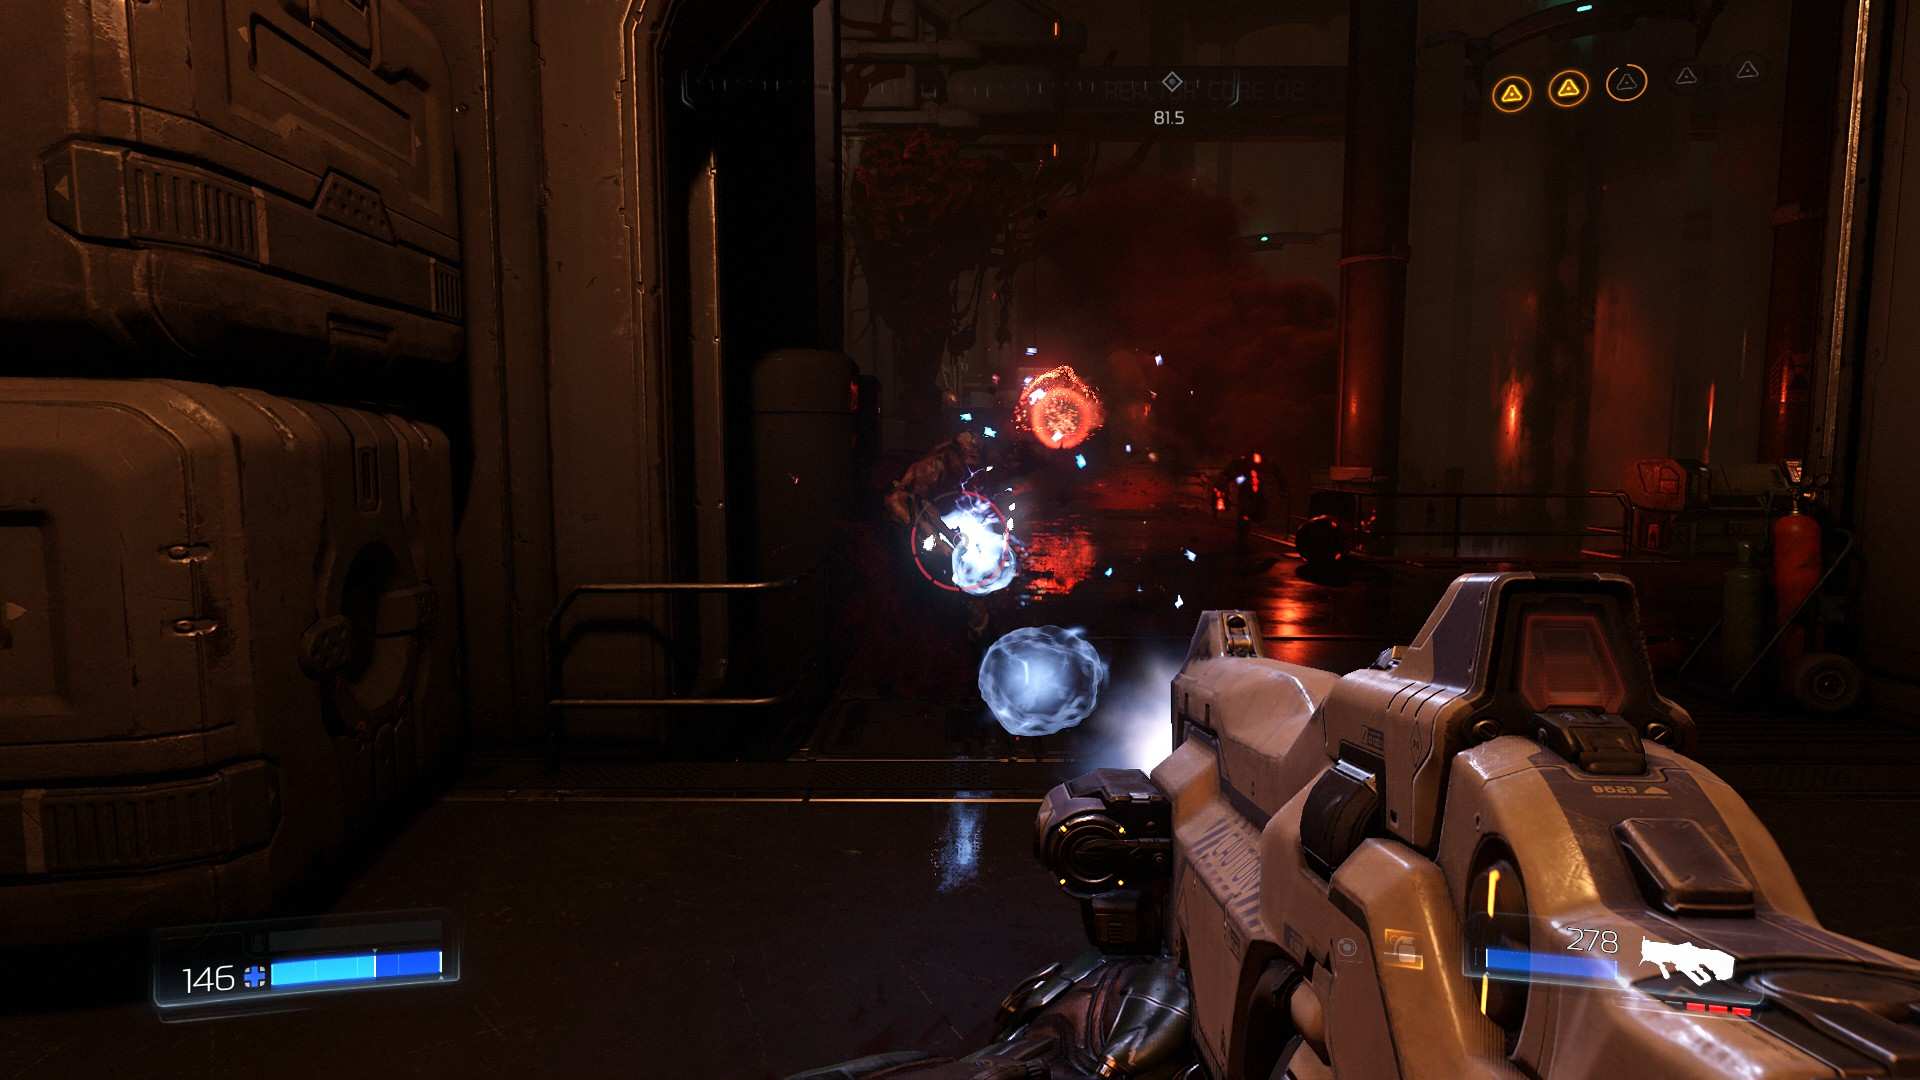 DOOM: Encountering the Cyberdemon, A review and reflection